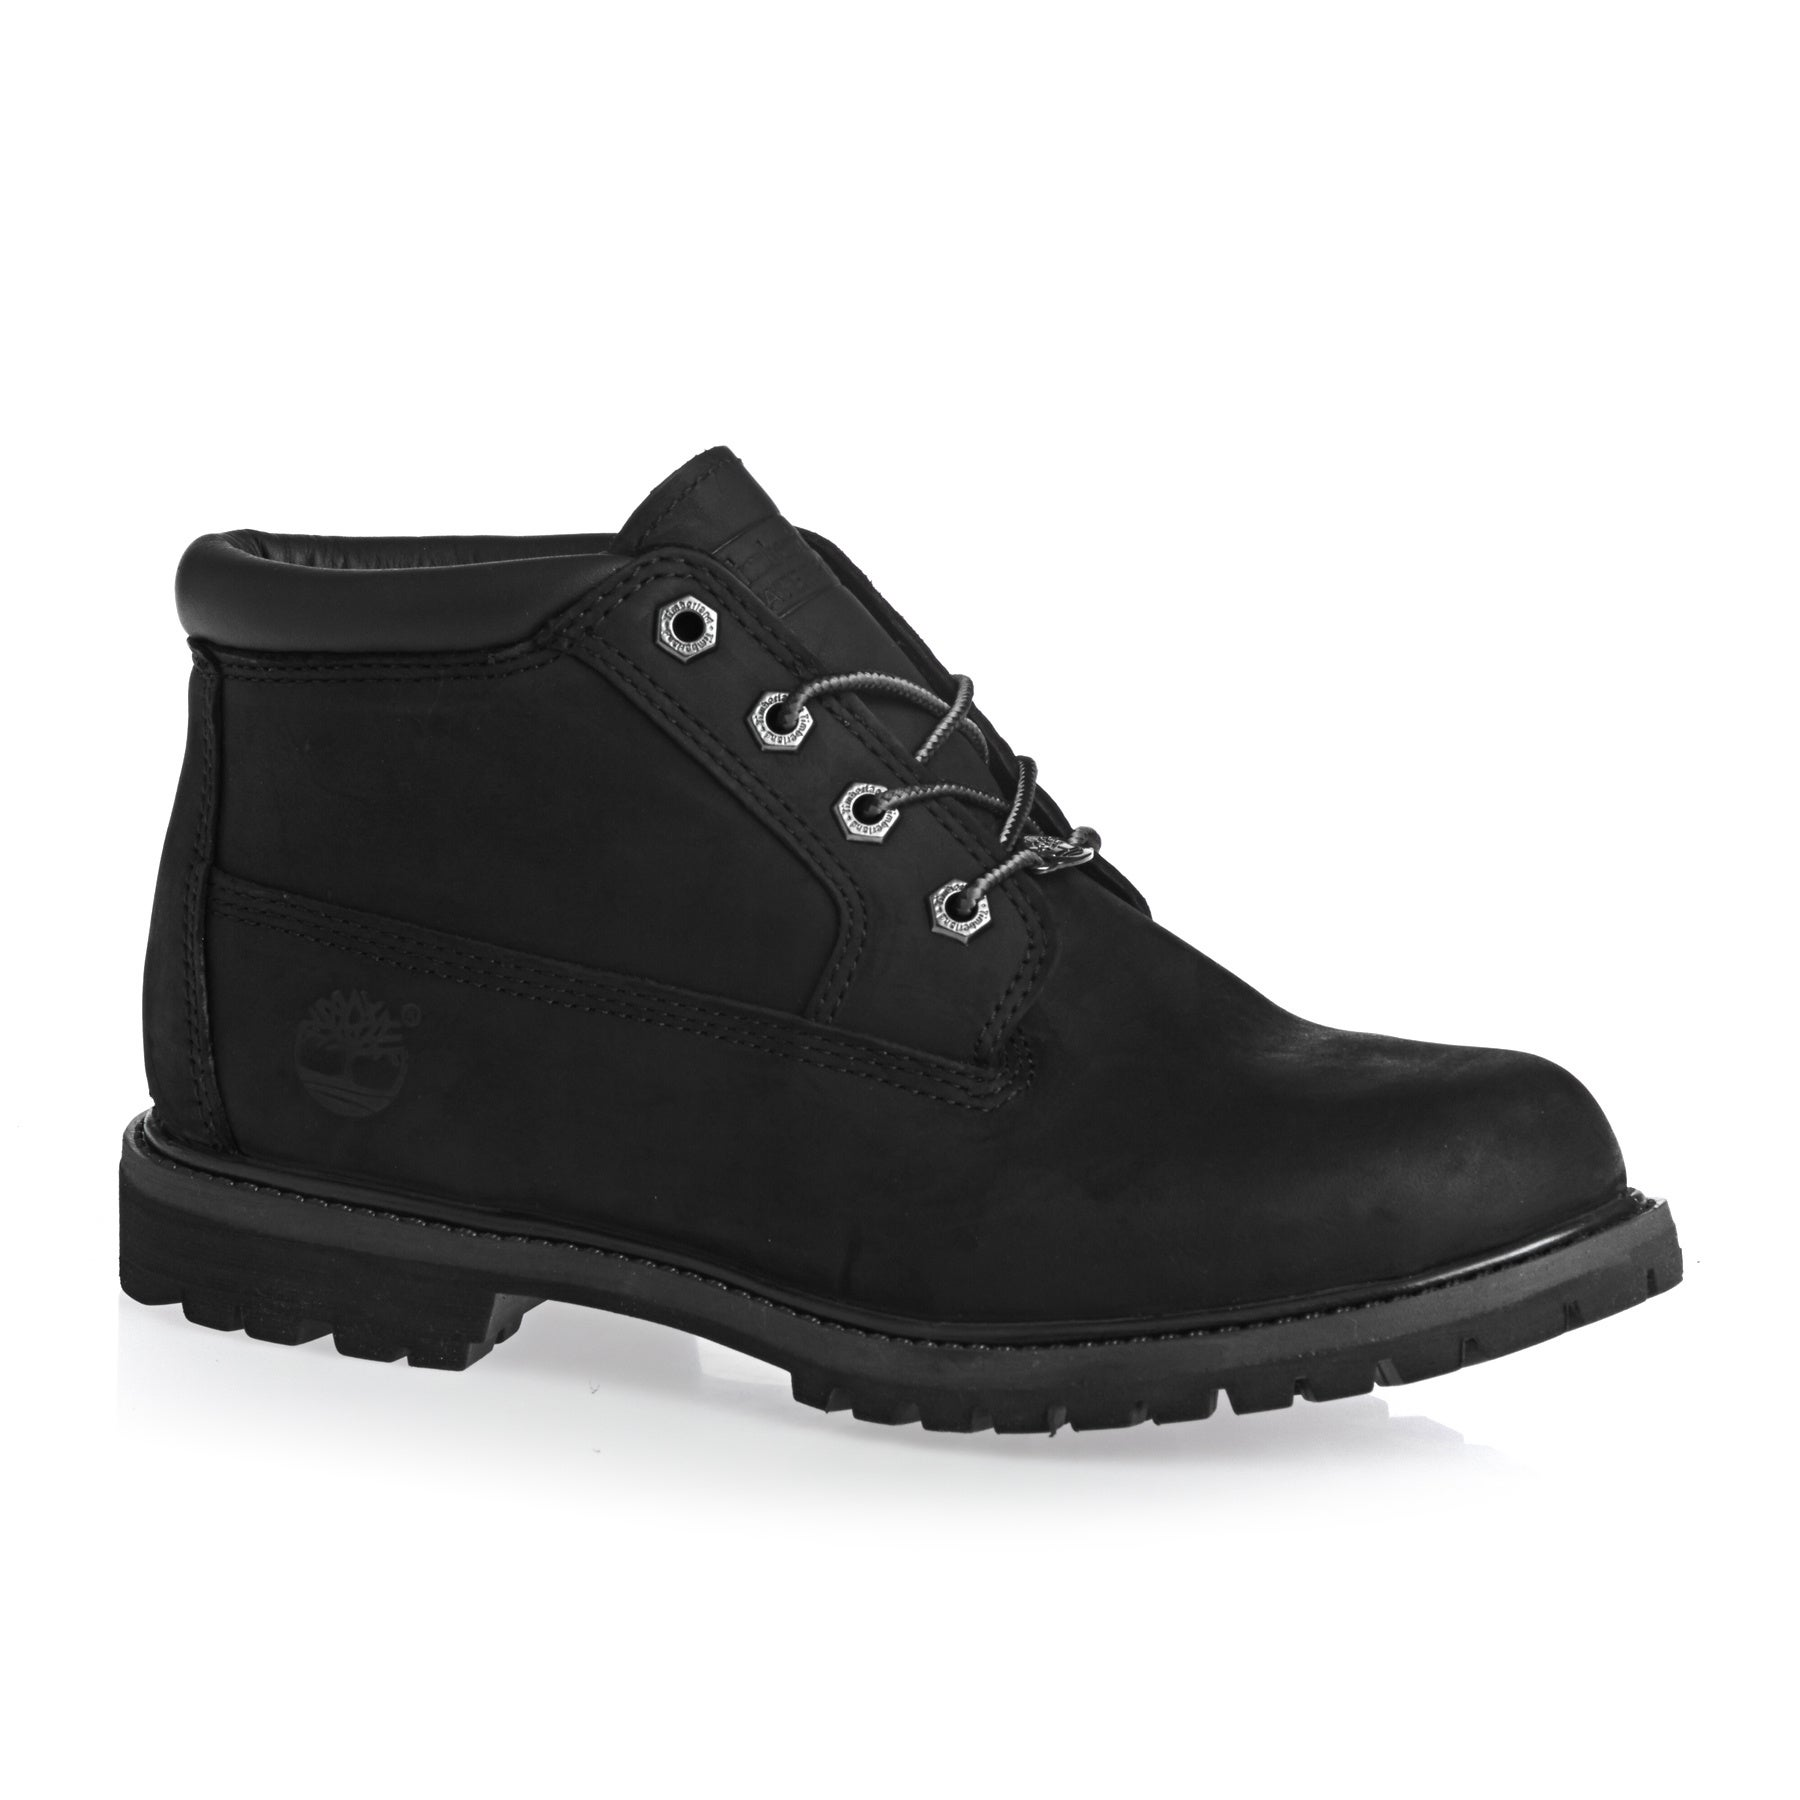 7e60201ae7 Timberland Womens Nellie Chukka Double Womens Boots available from ...